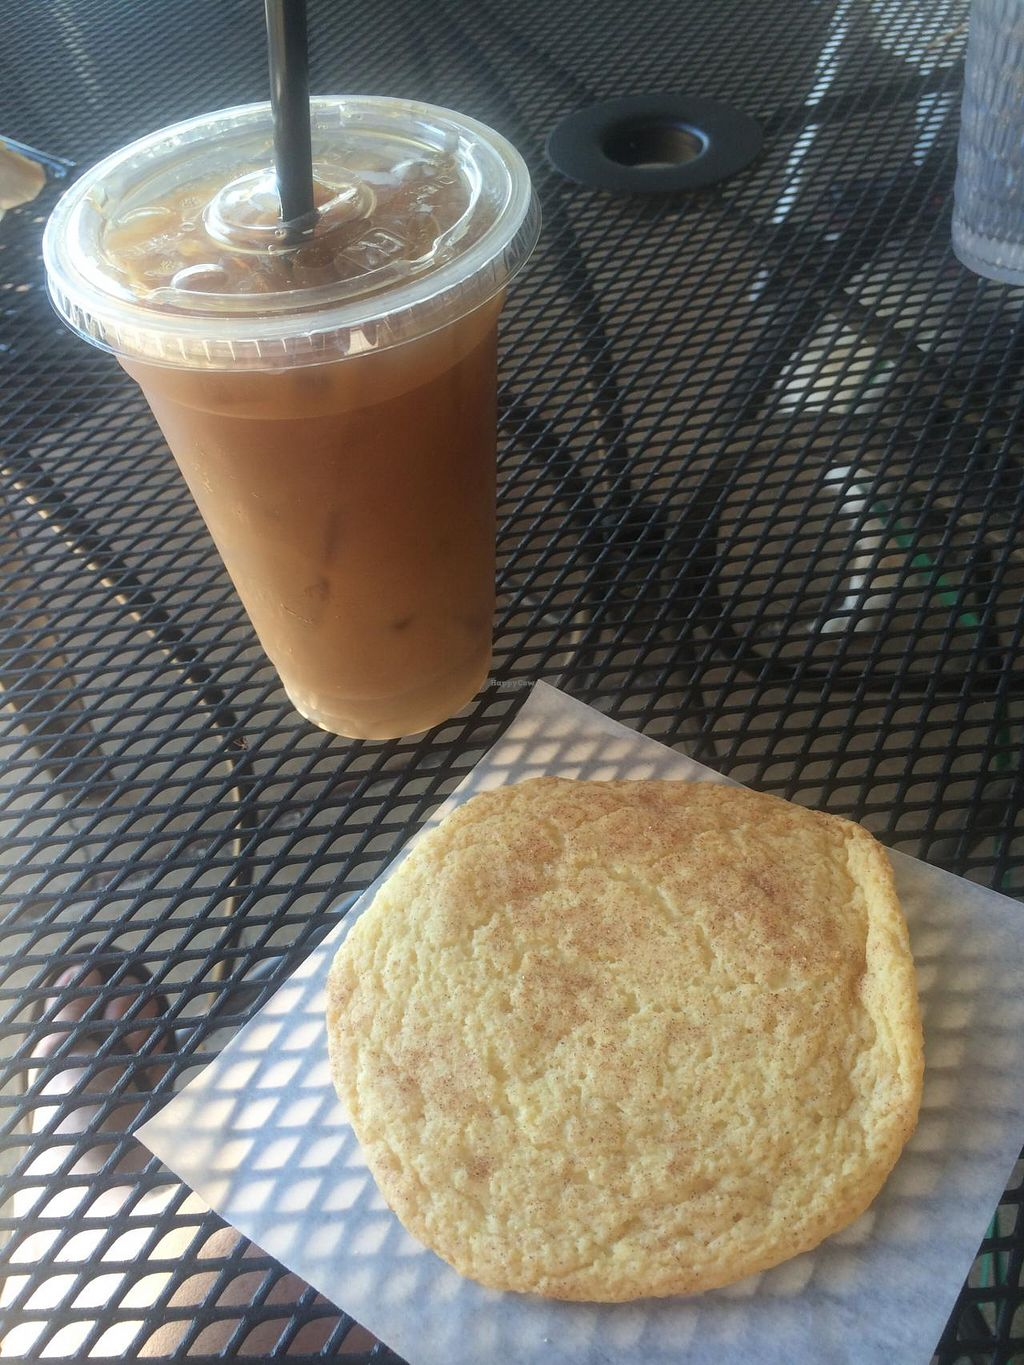 "Photo of Grounds For Coffee  by <a href=""/members/profile/Meggie%20and%20Ben"">Meggie and Ben</a> <br/>Coffee and vegan snickerdoodle  <br/> September 27, 2014  - <a href='/contact/abuse/image/34969/81328'>Report</a>"